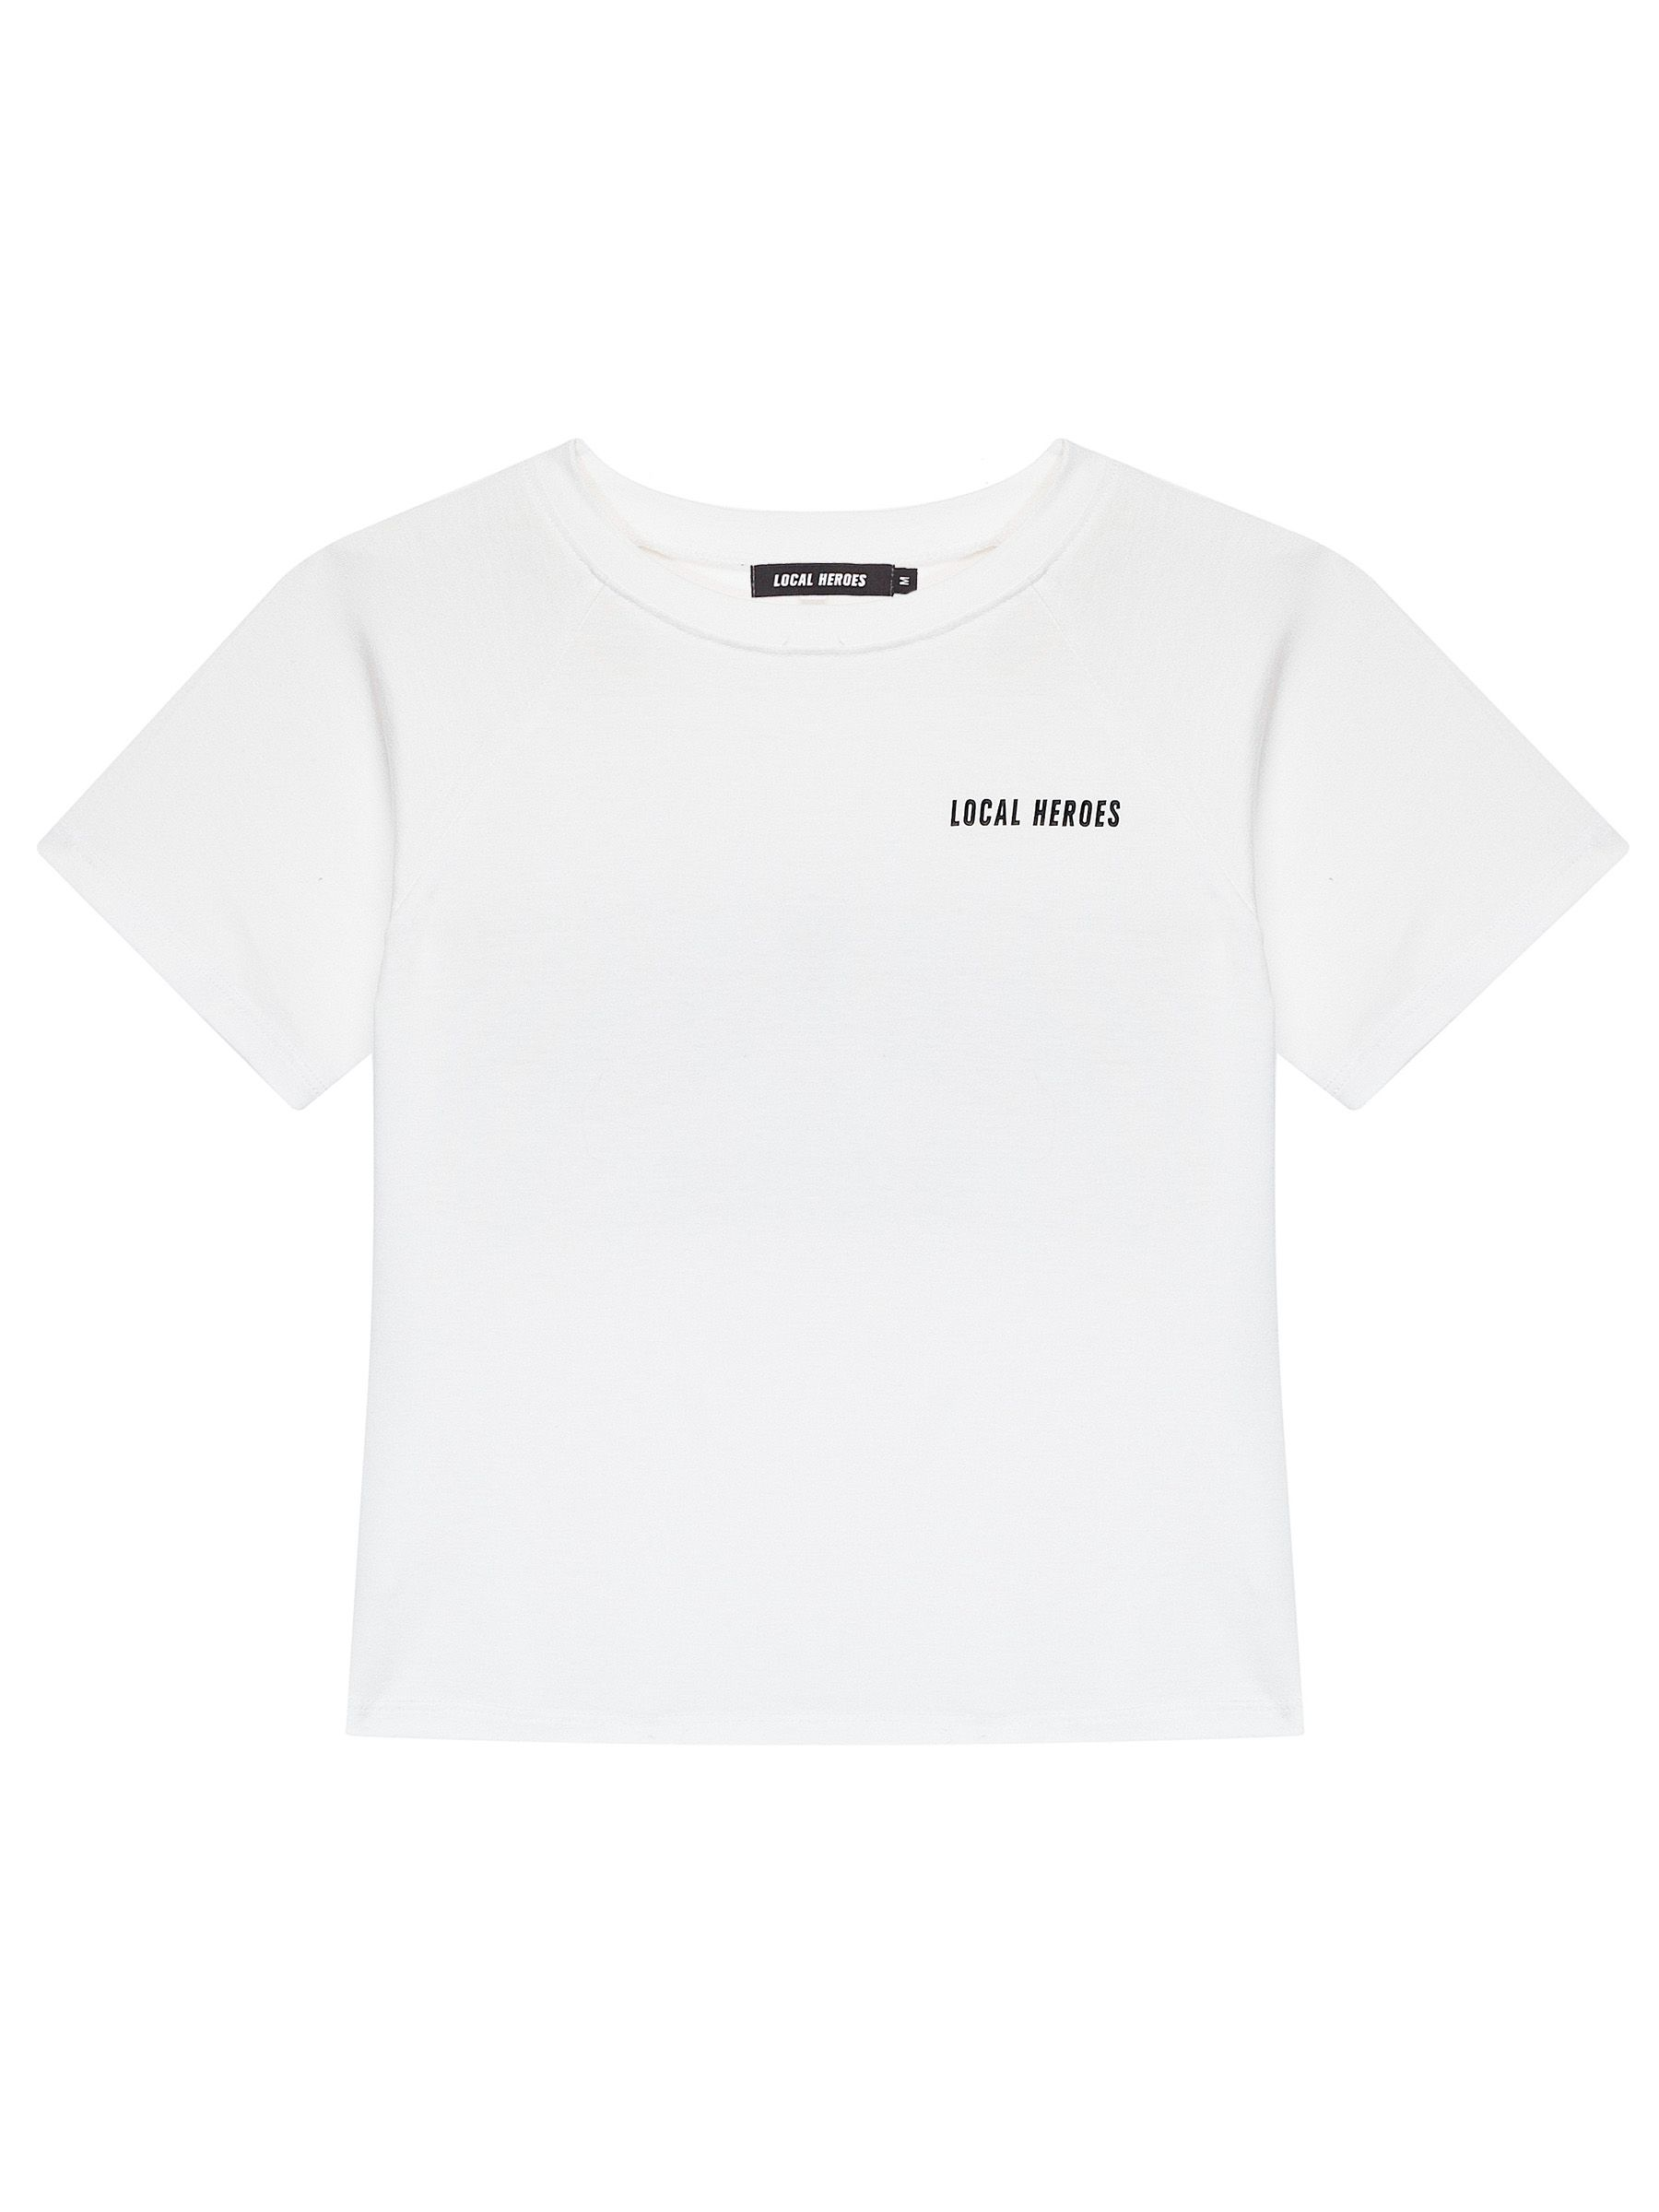 RATED ADULTS ONLY SLIM FIT TEE